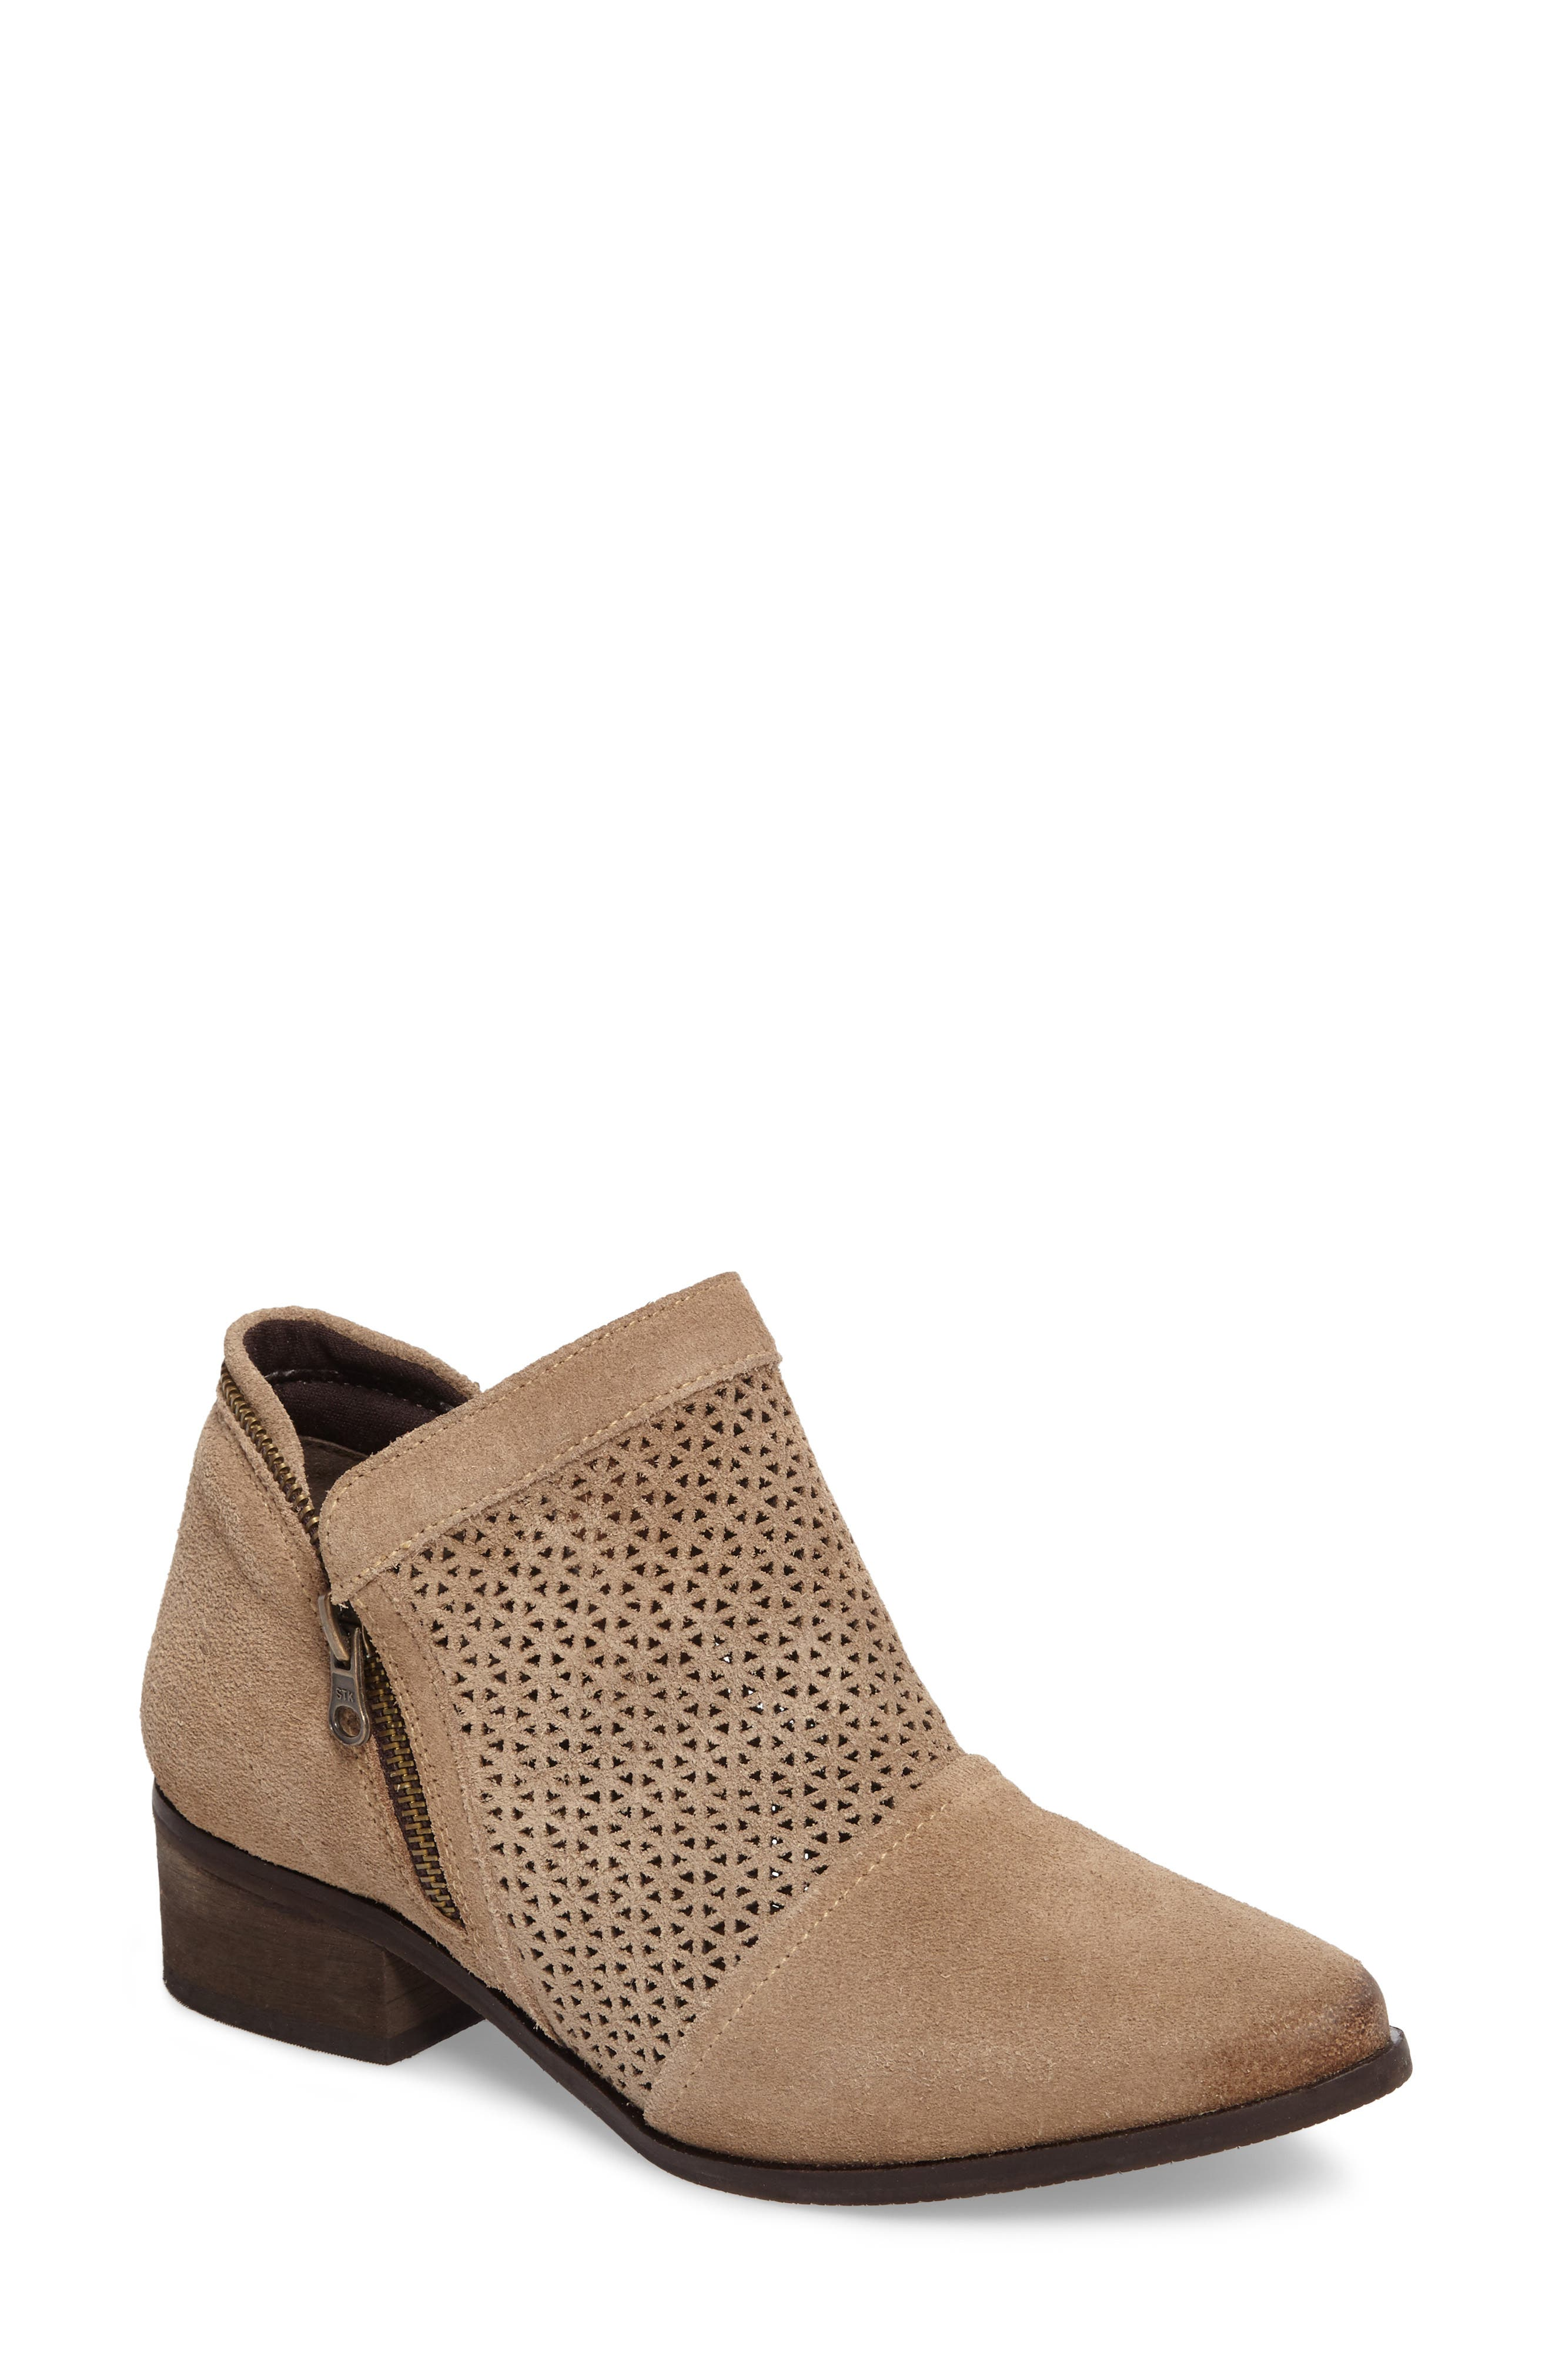 Zayna Bootie,                             Main thumbnail 1, color,                             250